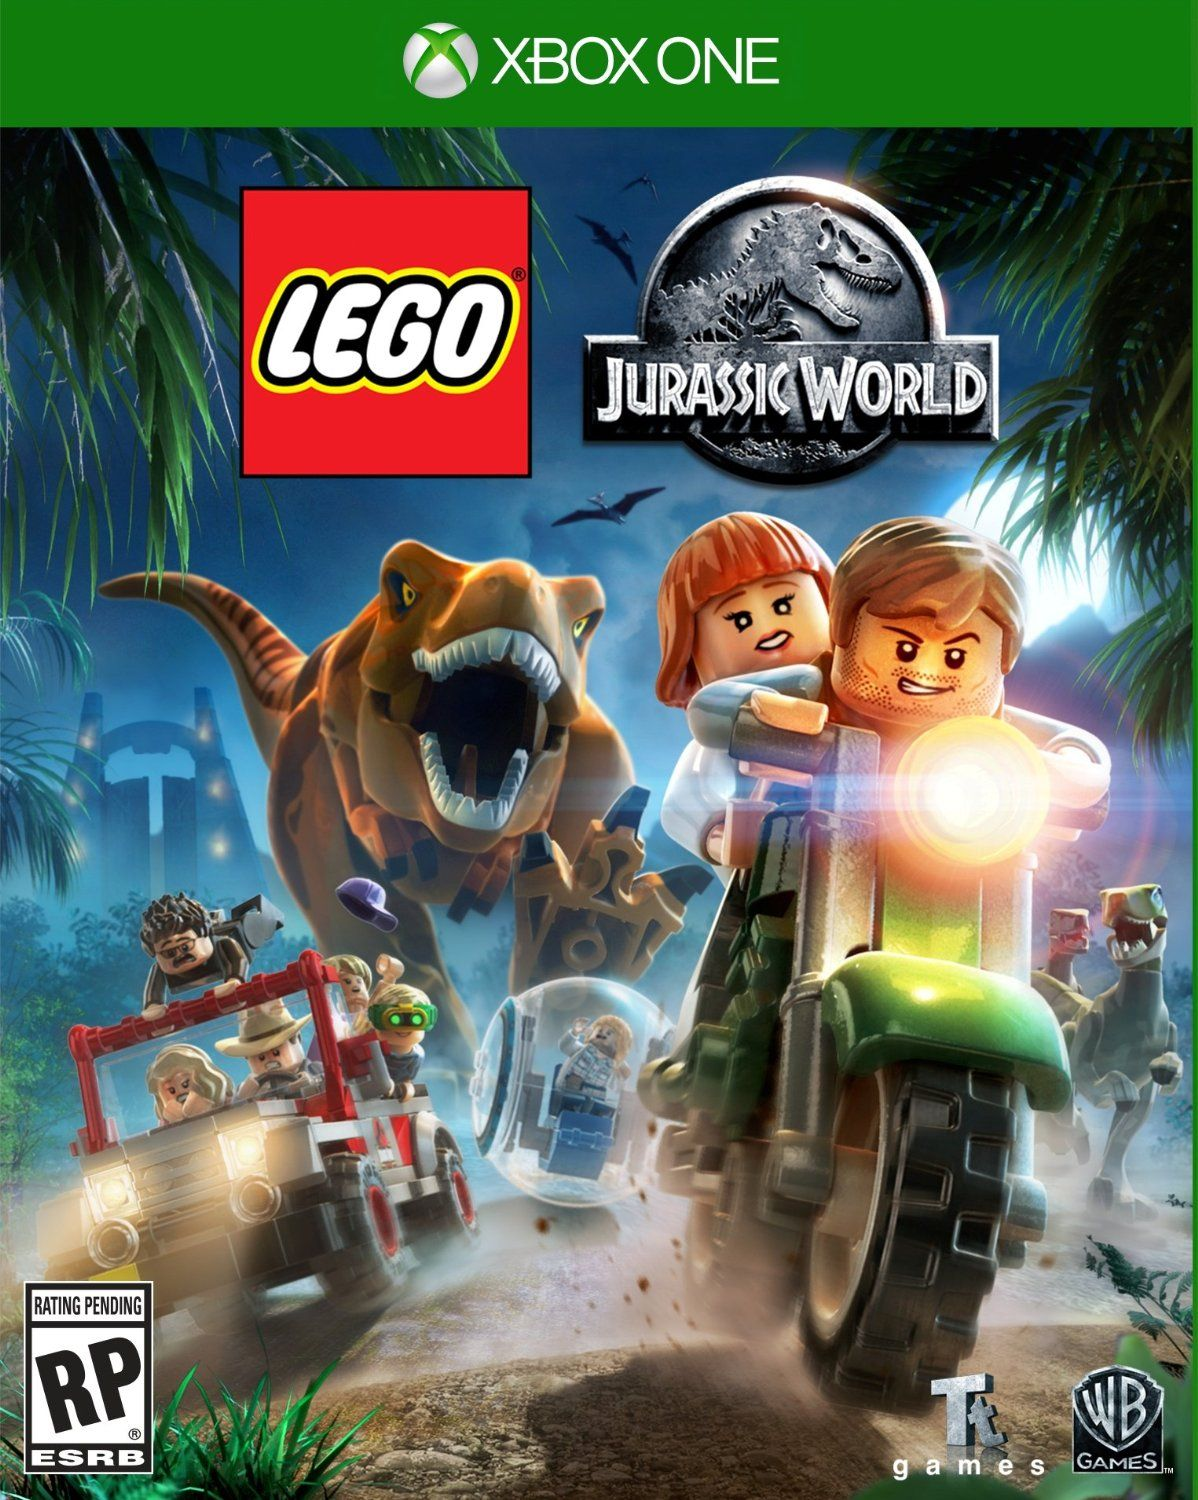 The New Lego Jurassic World Video Game For Xbox One And Also 360